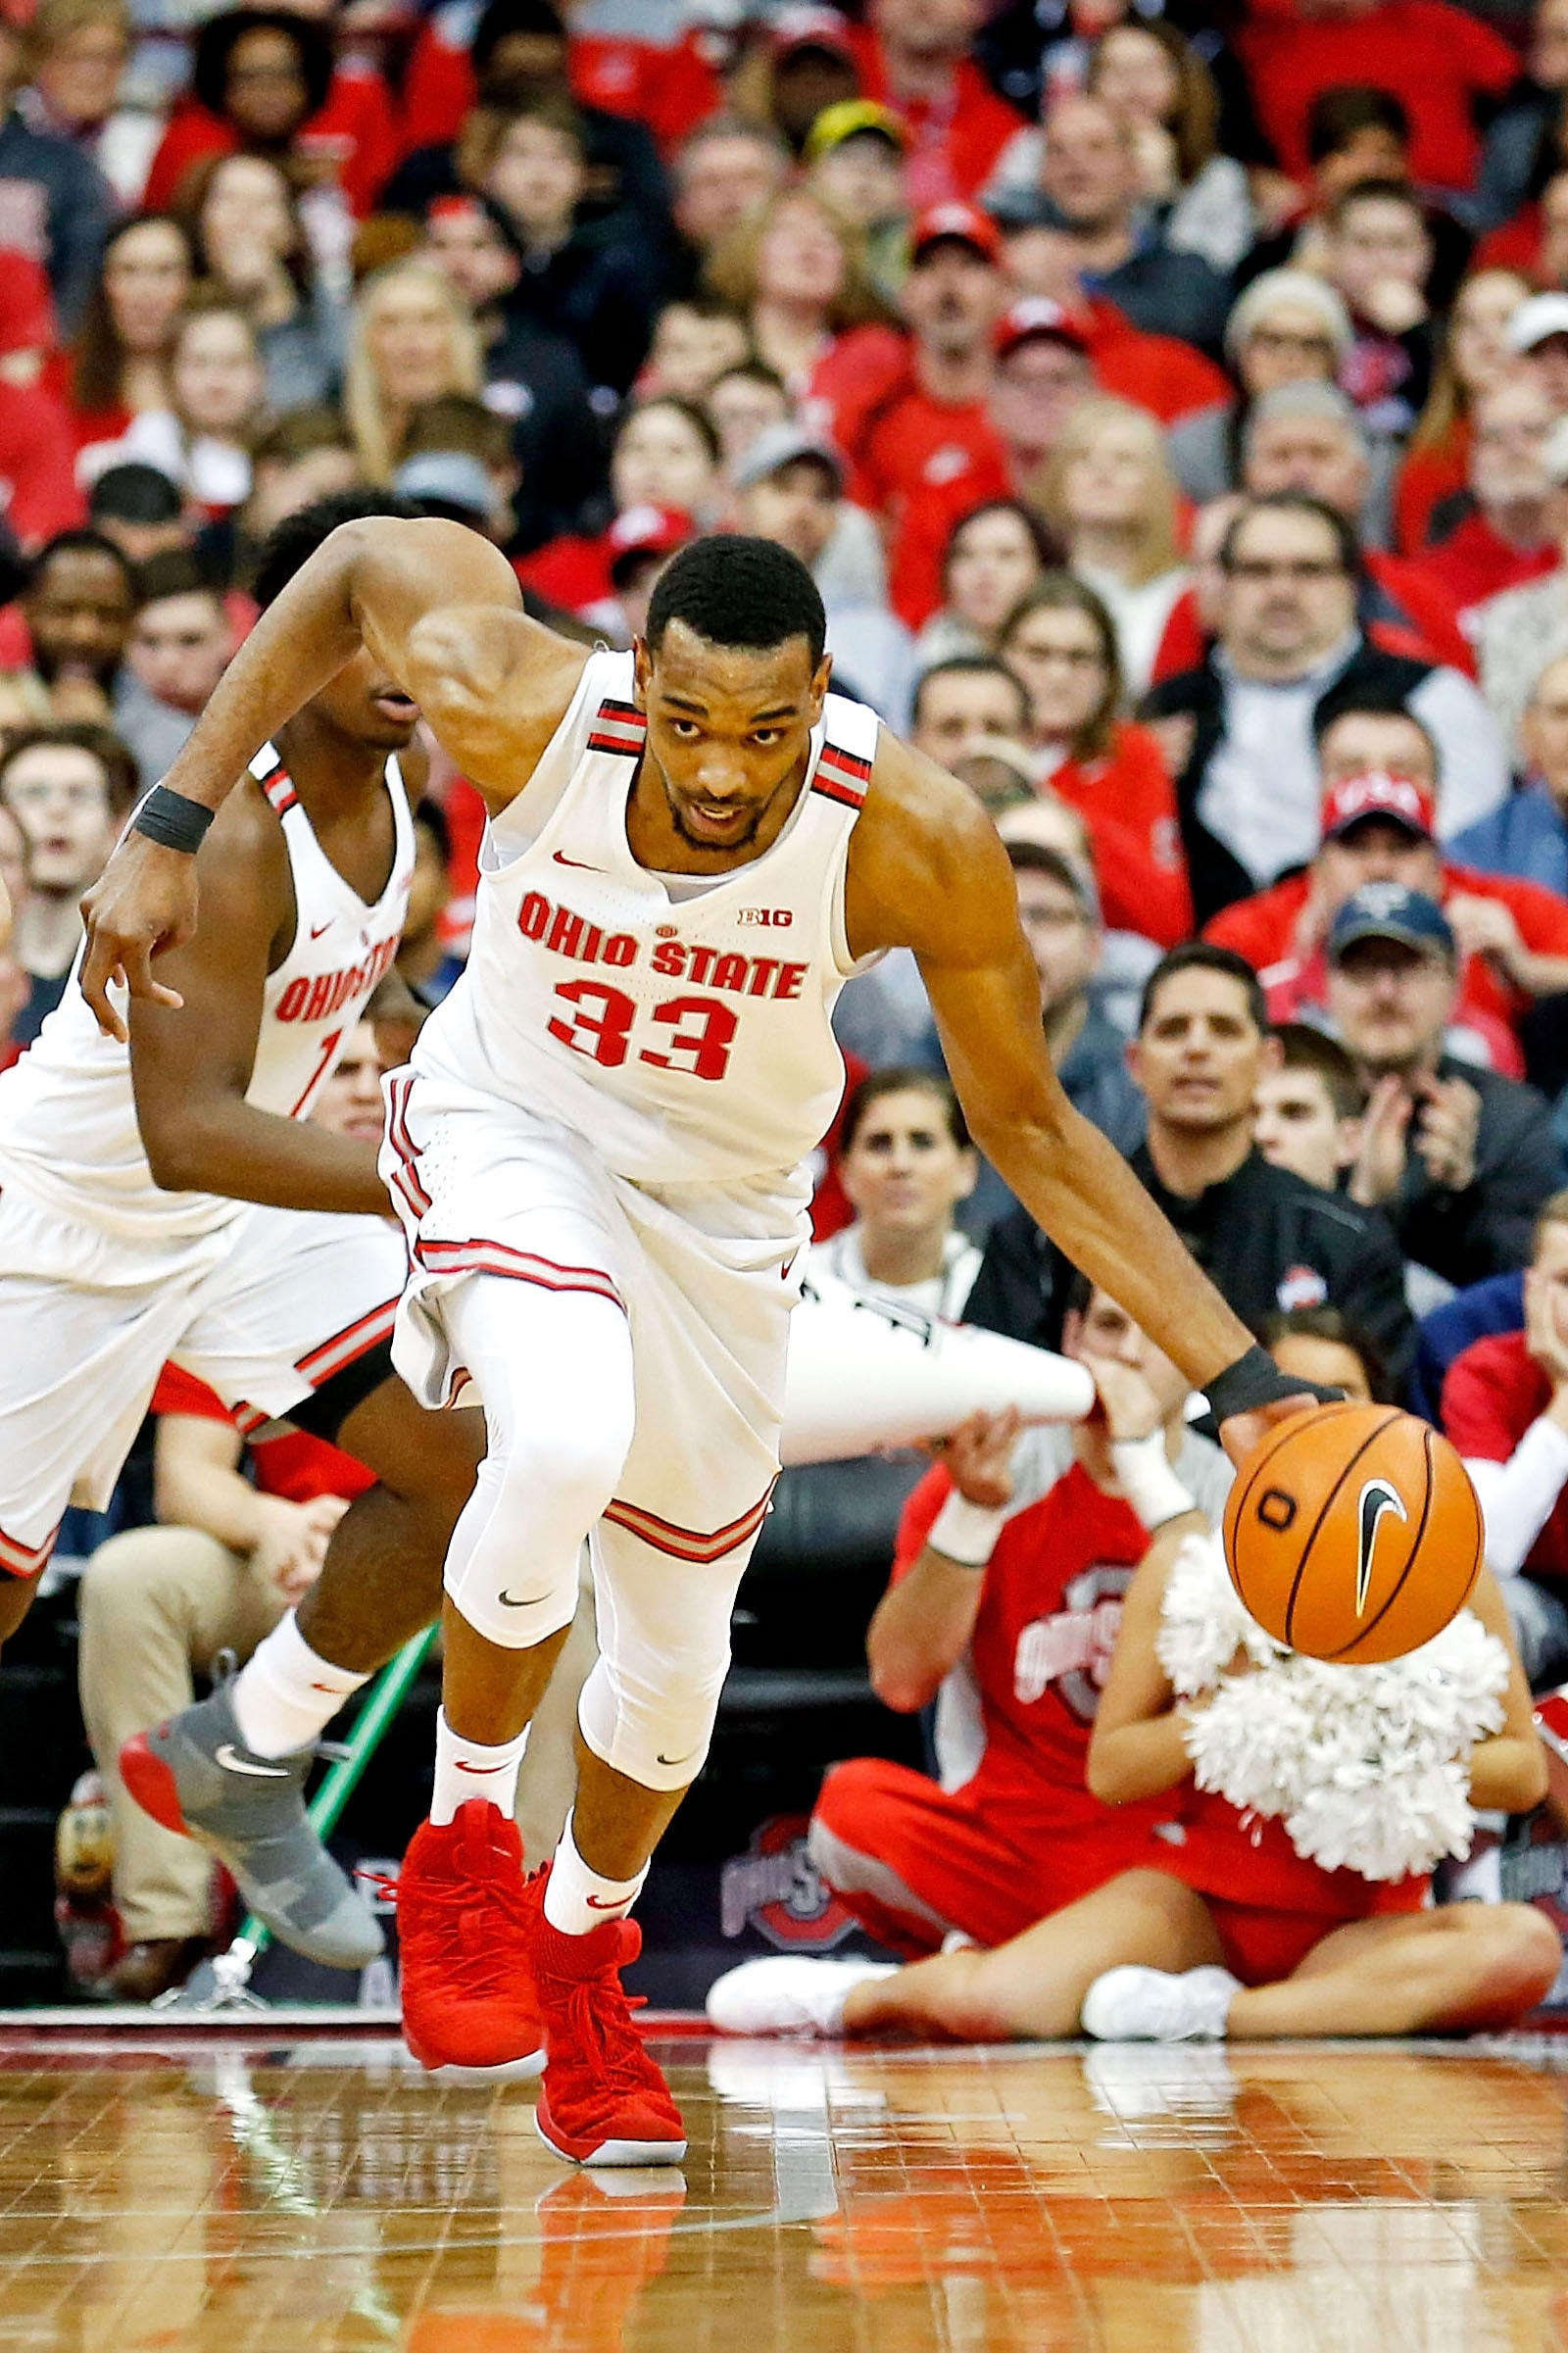 Keita Bates-Diop #33 of the Ohio State Buckeyes runs the ball up court during the game against the Iowa Hawkeyes at Value City Arena on February 10, 2018 in Columbus, Ohio